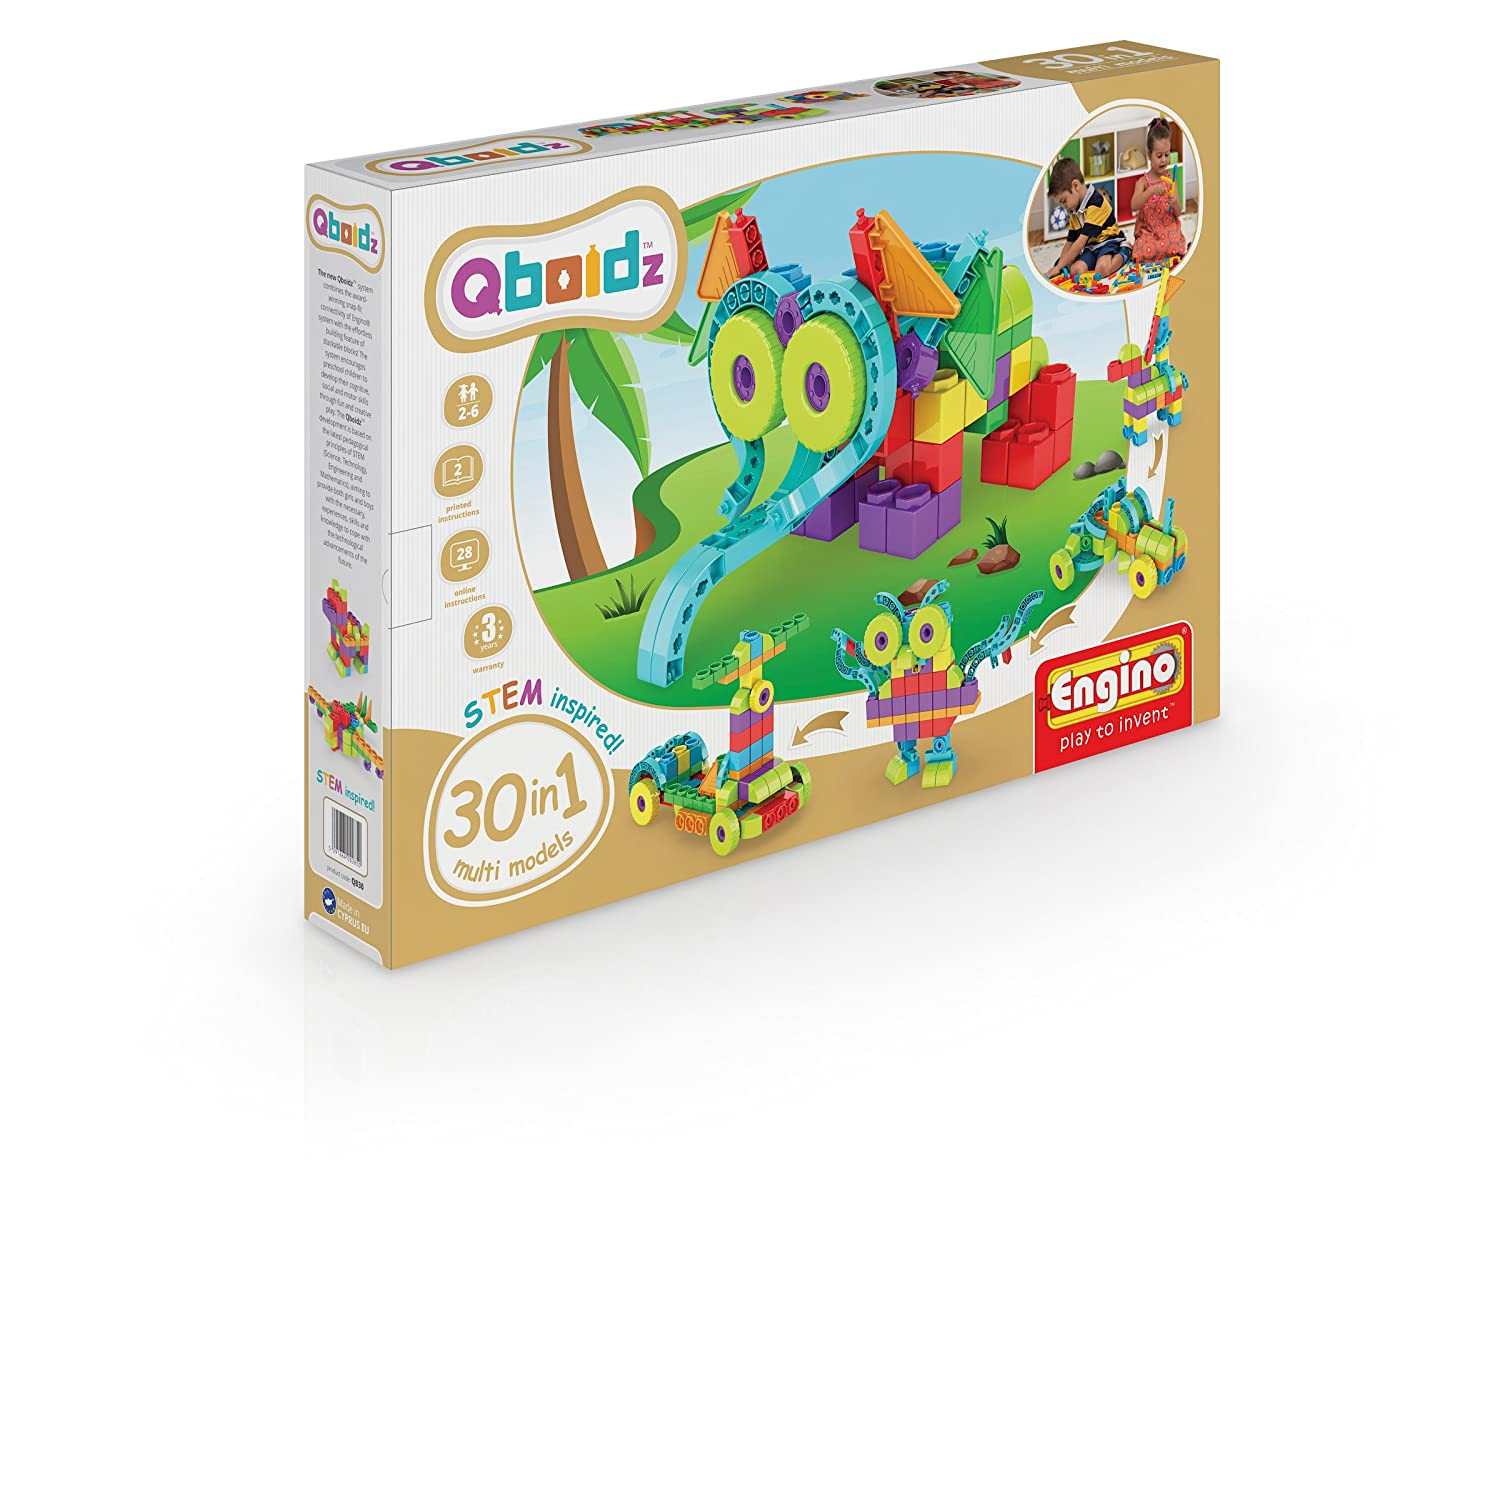 Engino Qboidz 30 in 1 Set Multi Models Building Kit